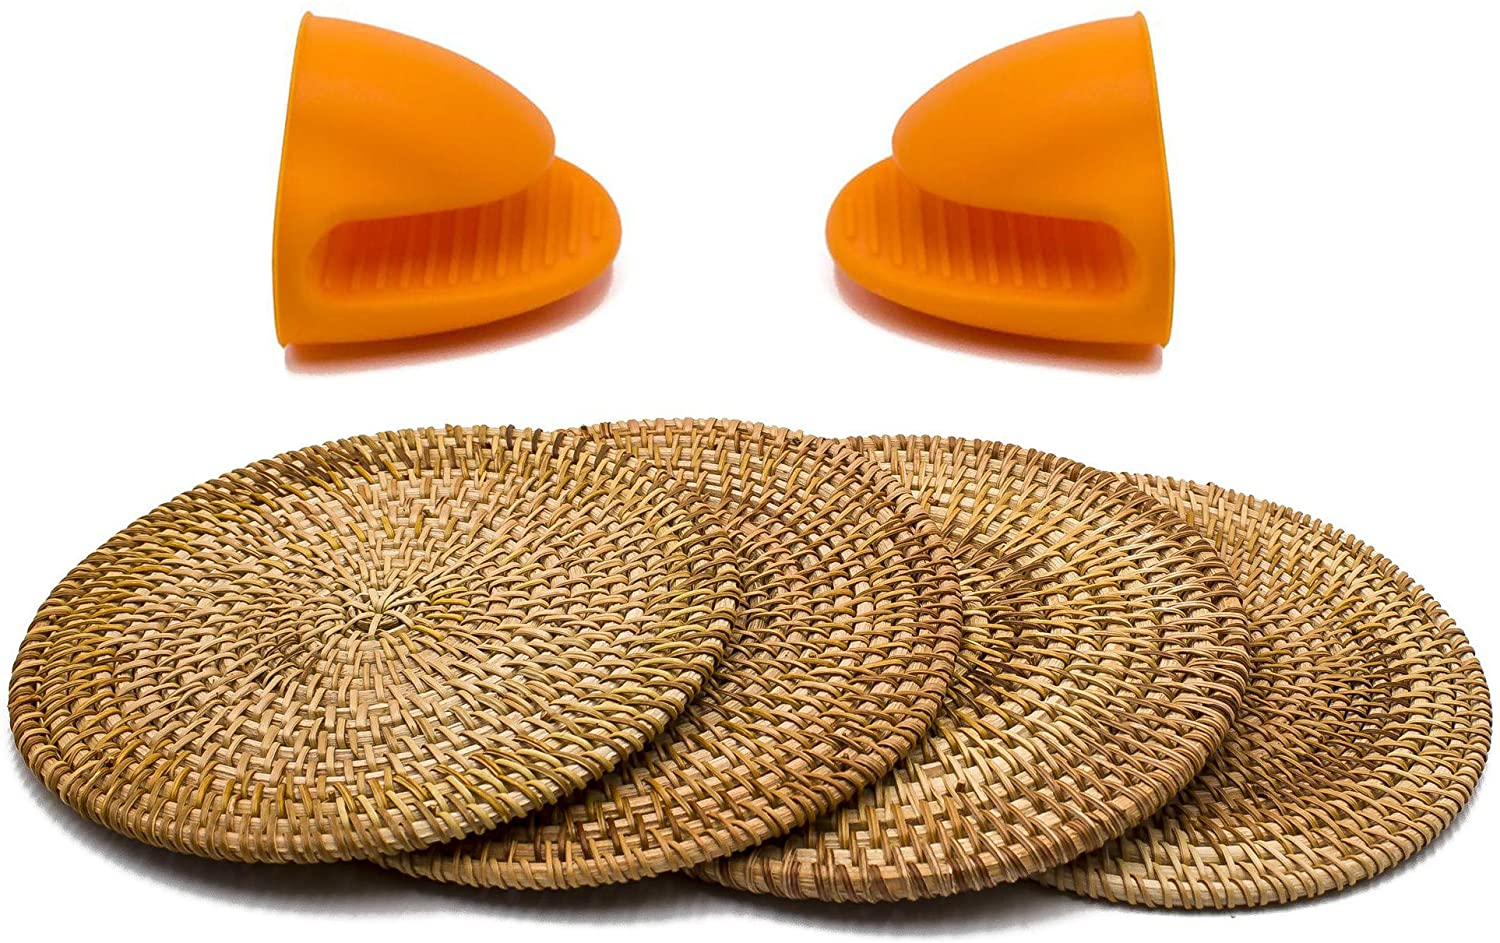 BEEHOMEE Trivets For Hot Dishes - Woven Rattan Trivets Hot Pads For Dinning Table,kitchen Heat Resistant Straw Dish Coasters Placemats Pot Holder (7.08 Inch) …